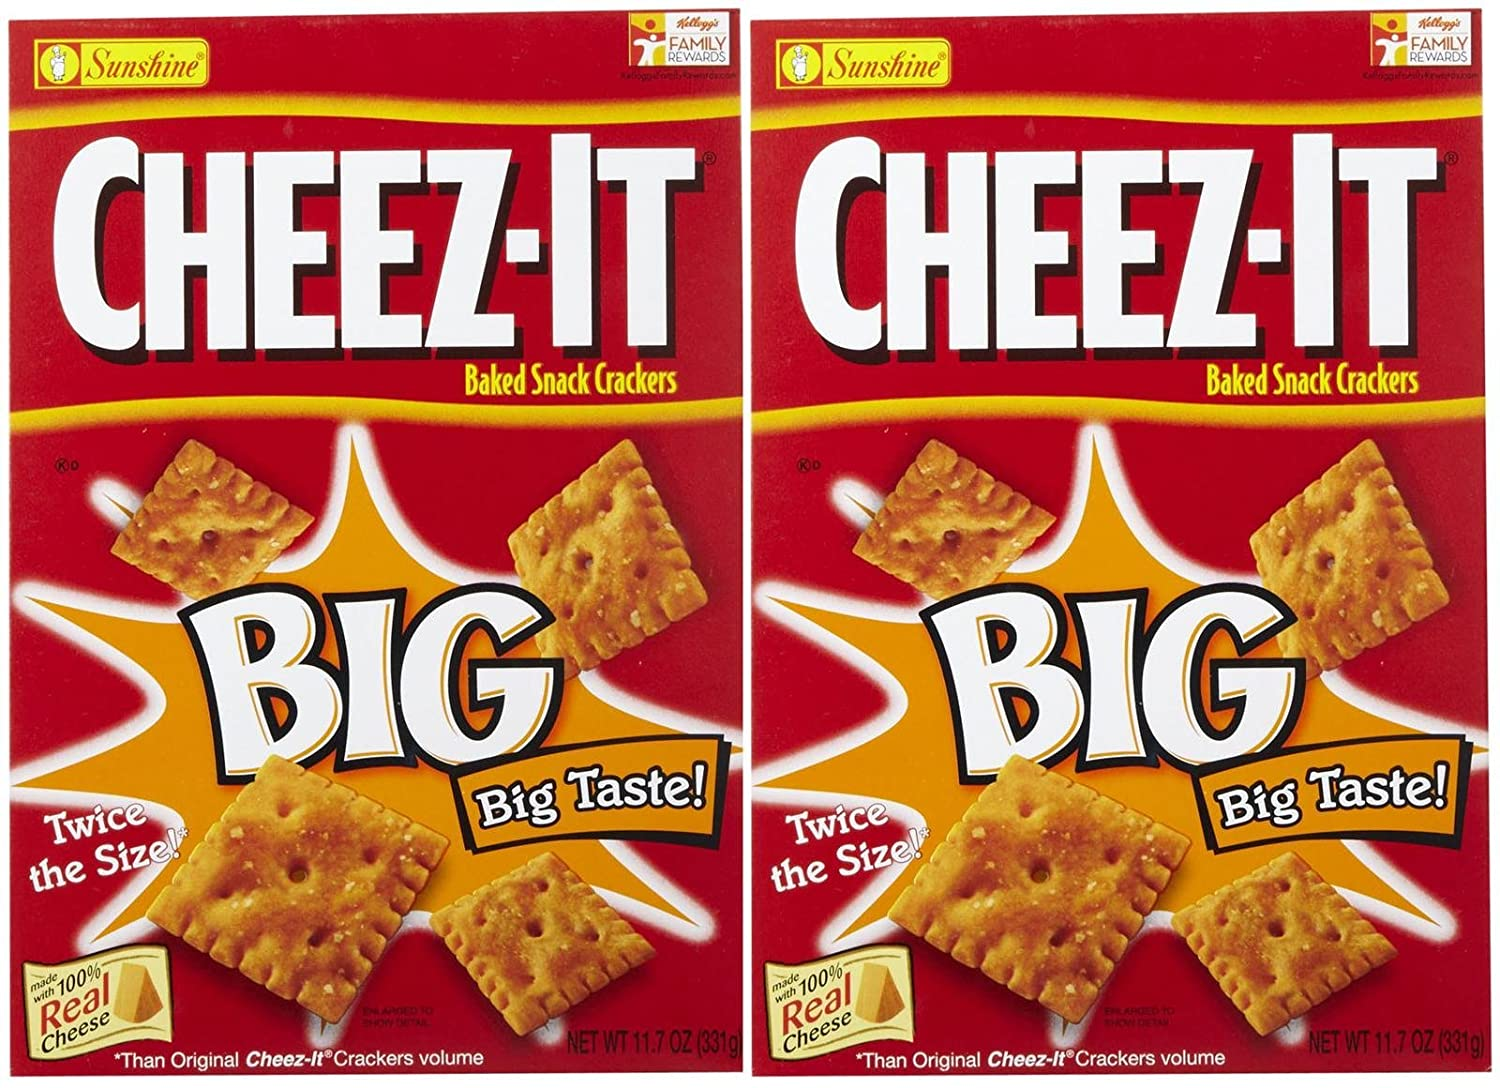 Cheez-It Baked Snack Crackers National products - Big Pack 2 Original oz Cheap 11.7